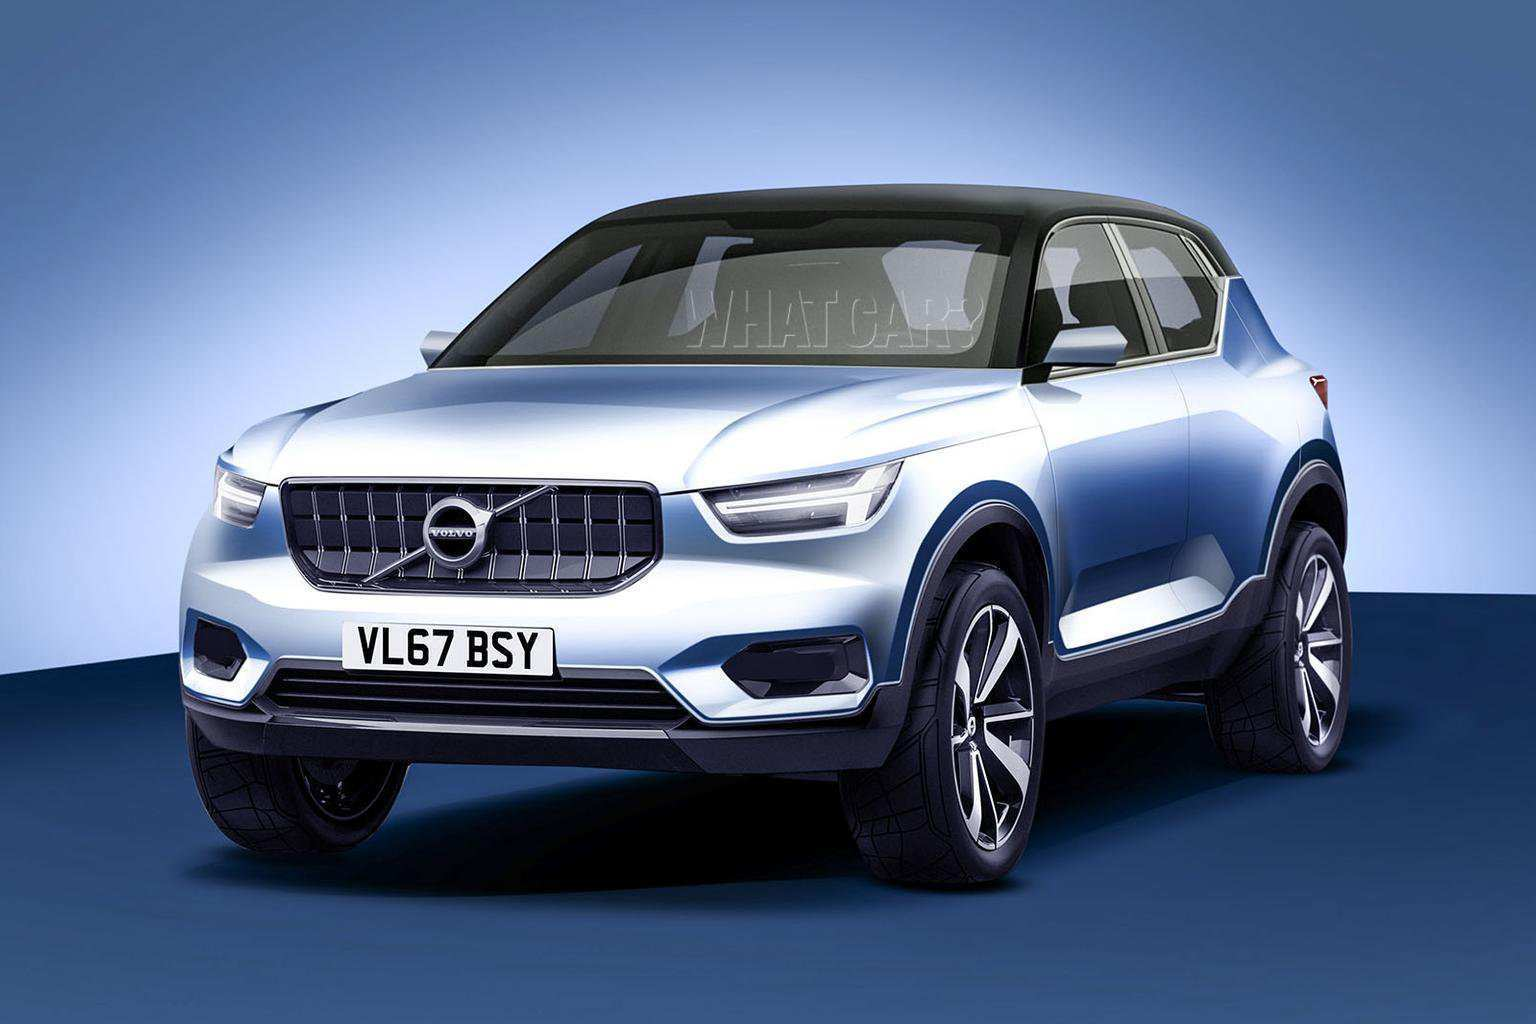 58 All New Volvo Electric Vehicles 2019 Prices